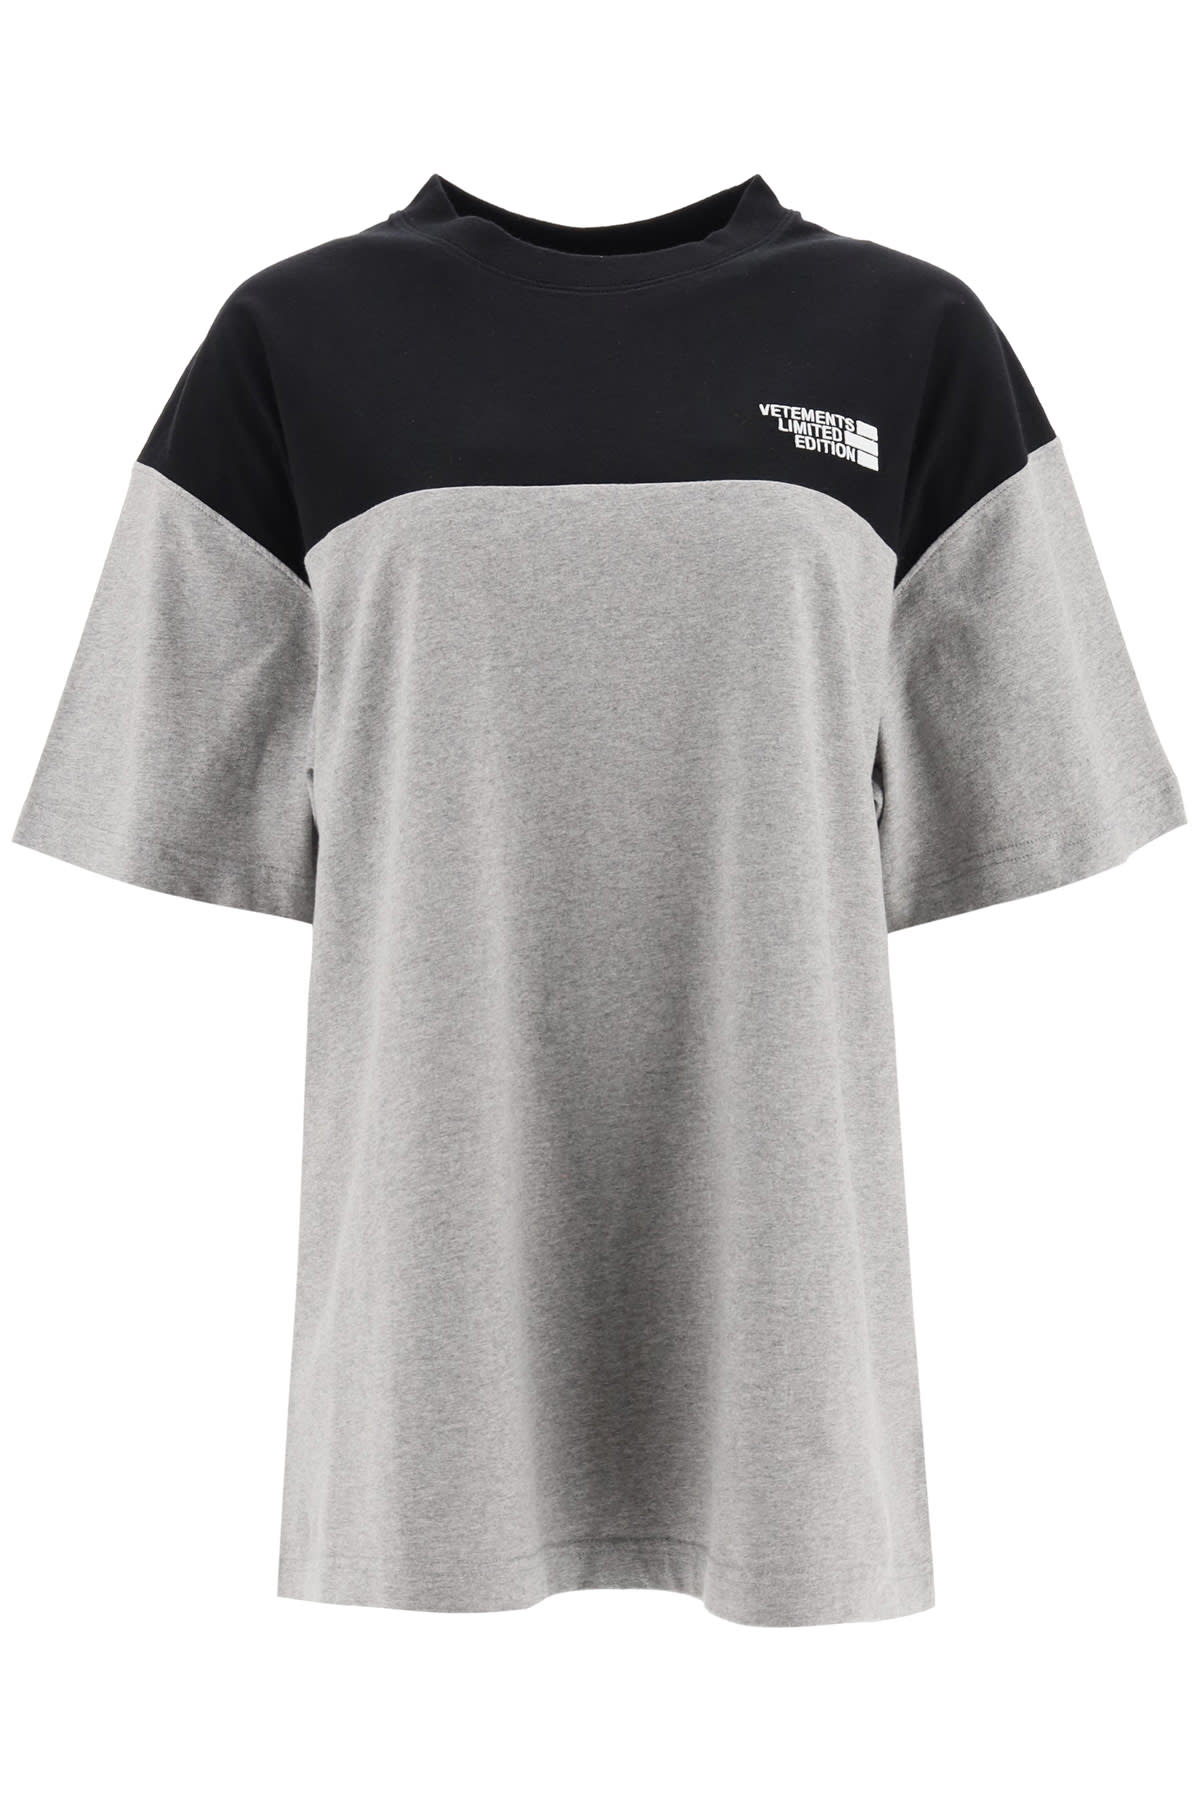 Vetements T-SHIRT WITH LOGO EMBROIDERY